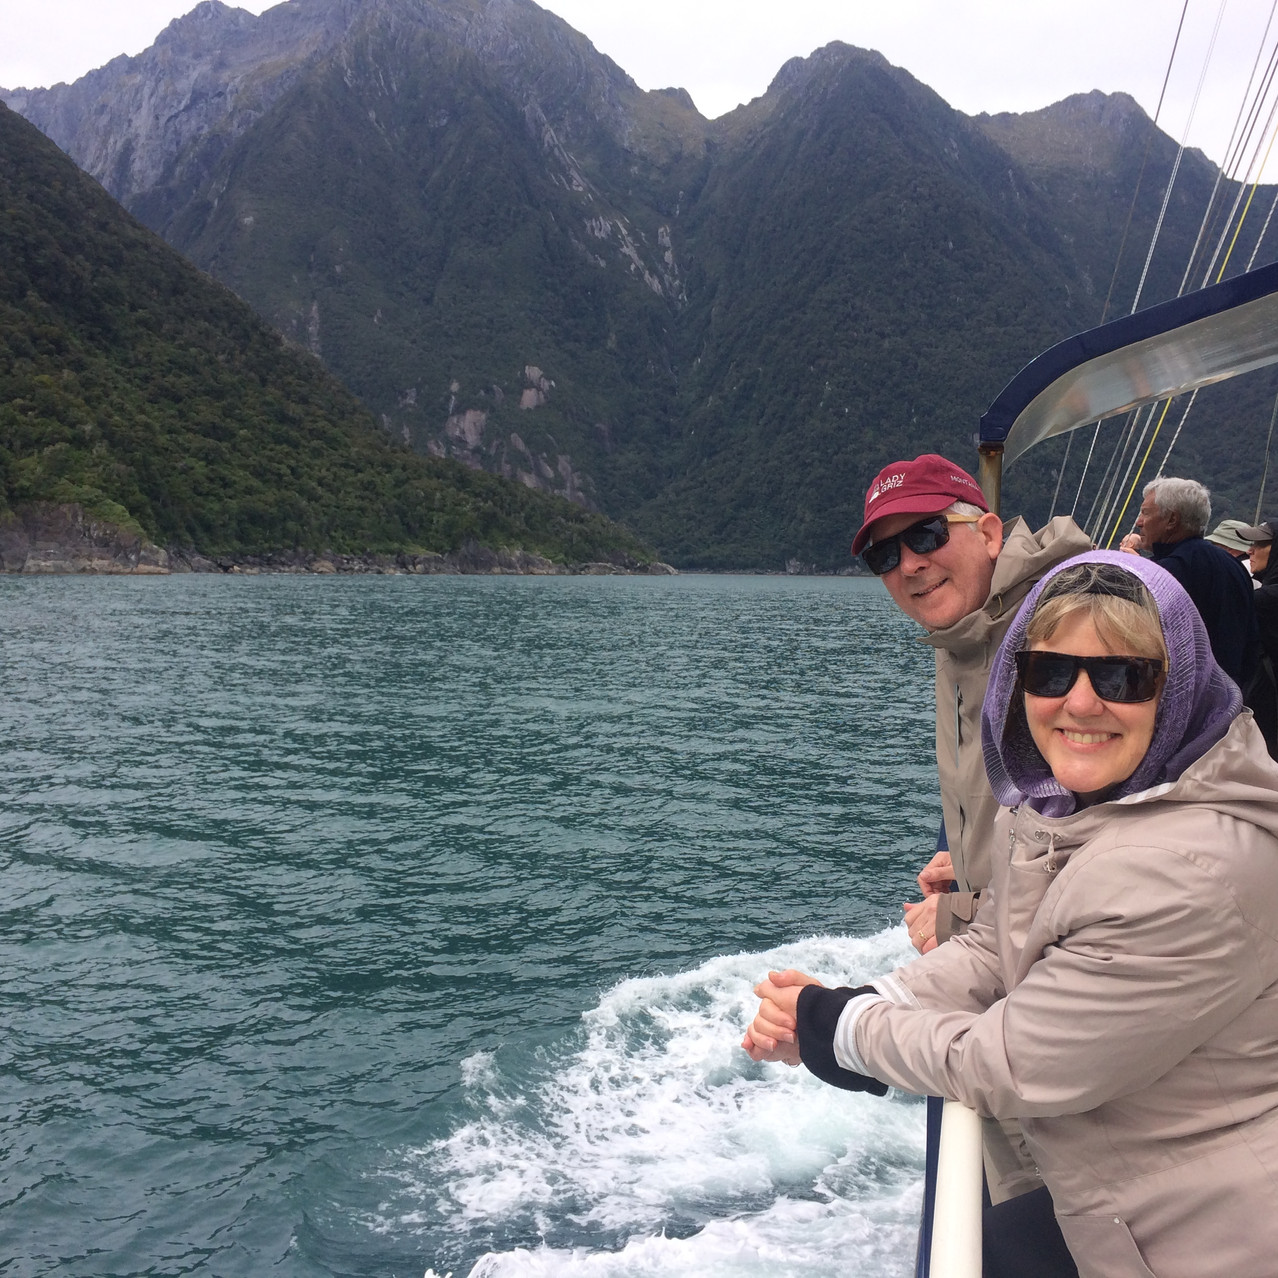 Smiling on the boat during our Milford Sound cruise